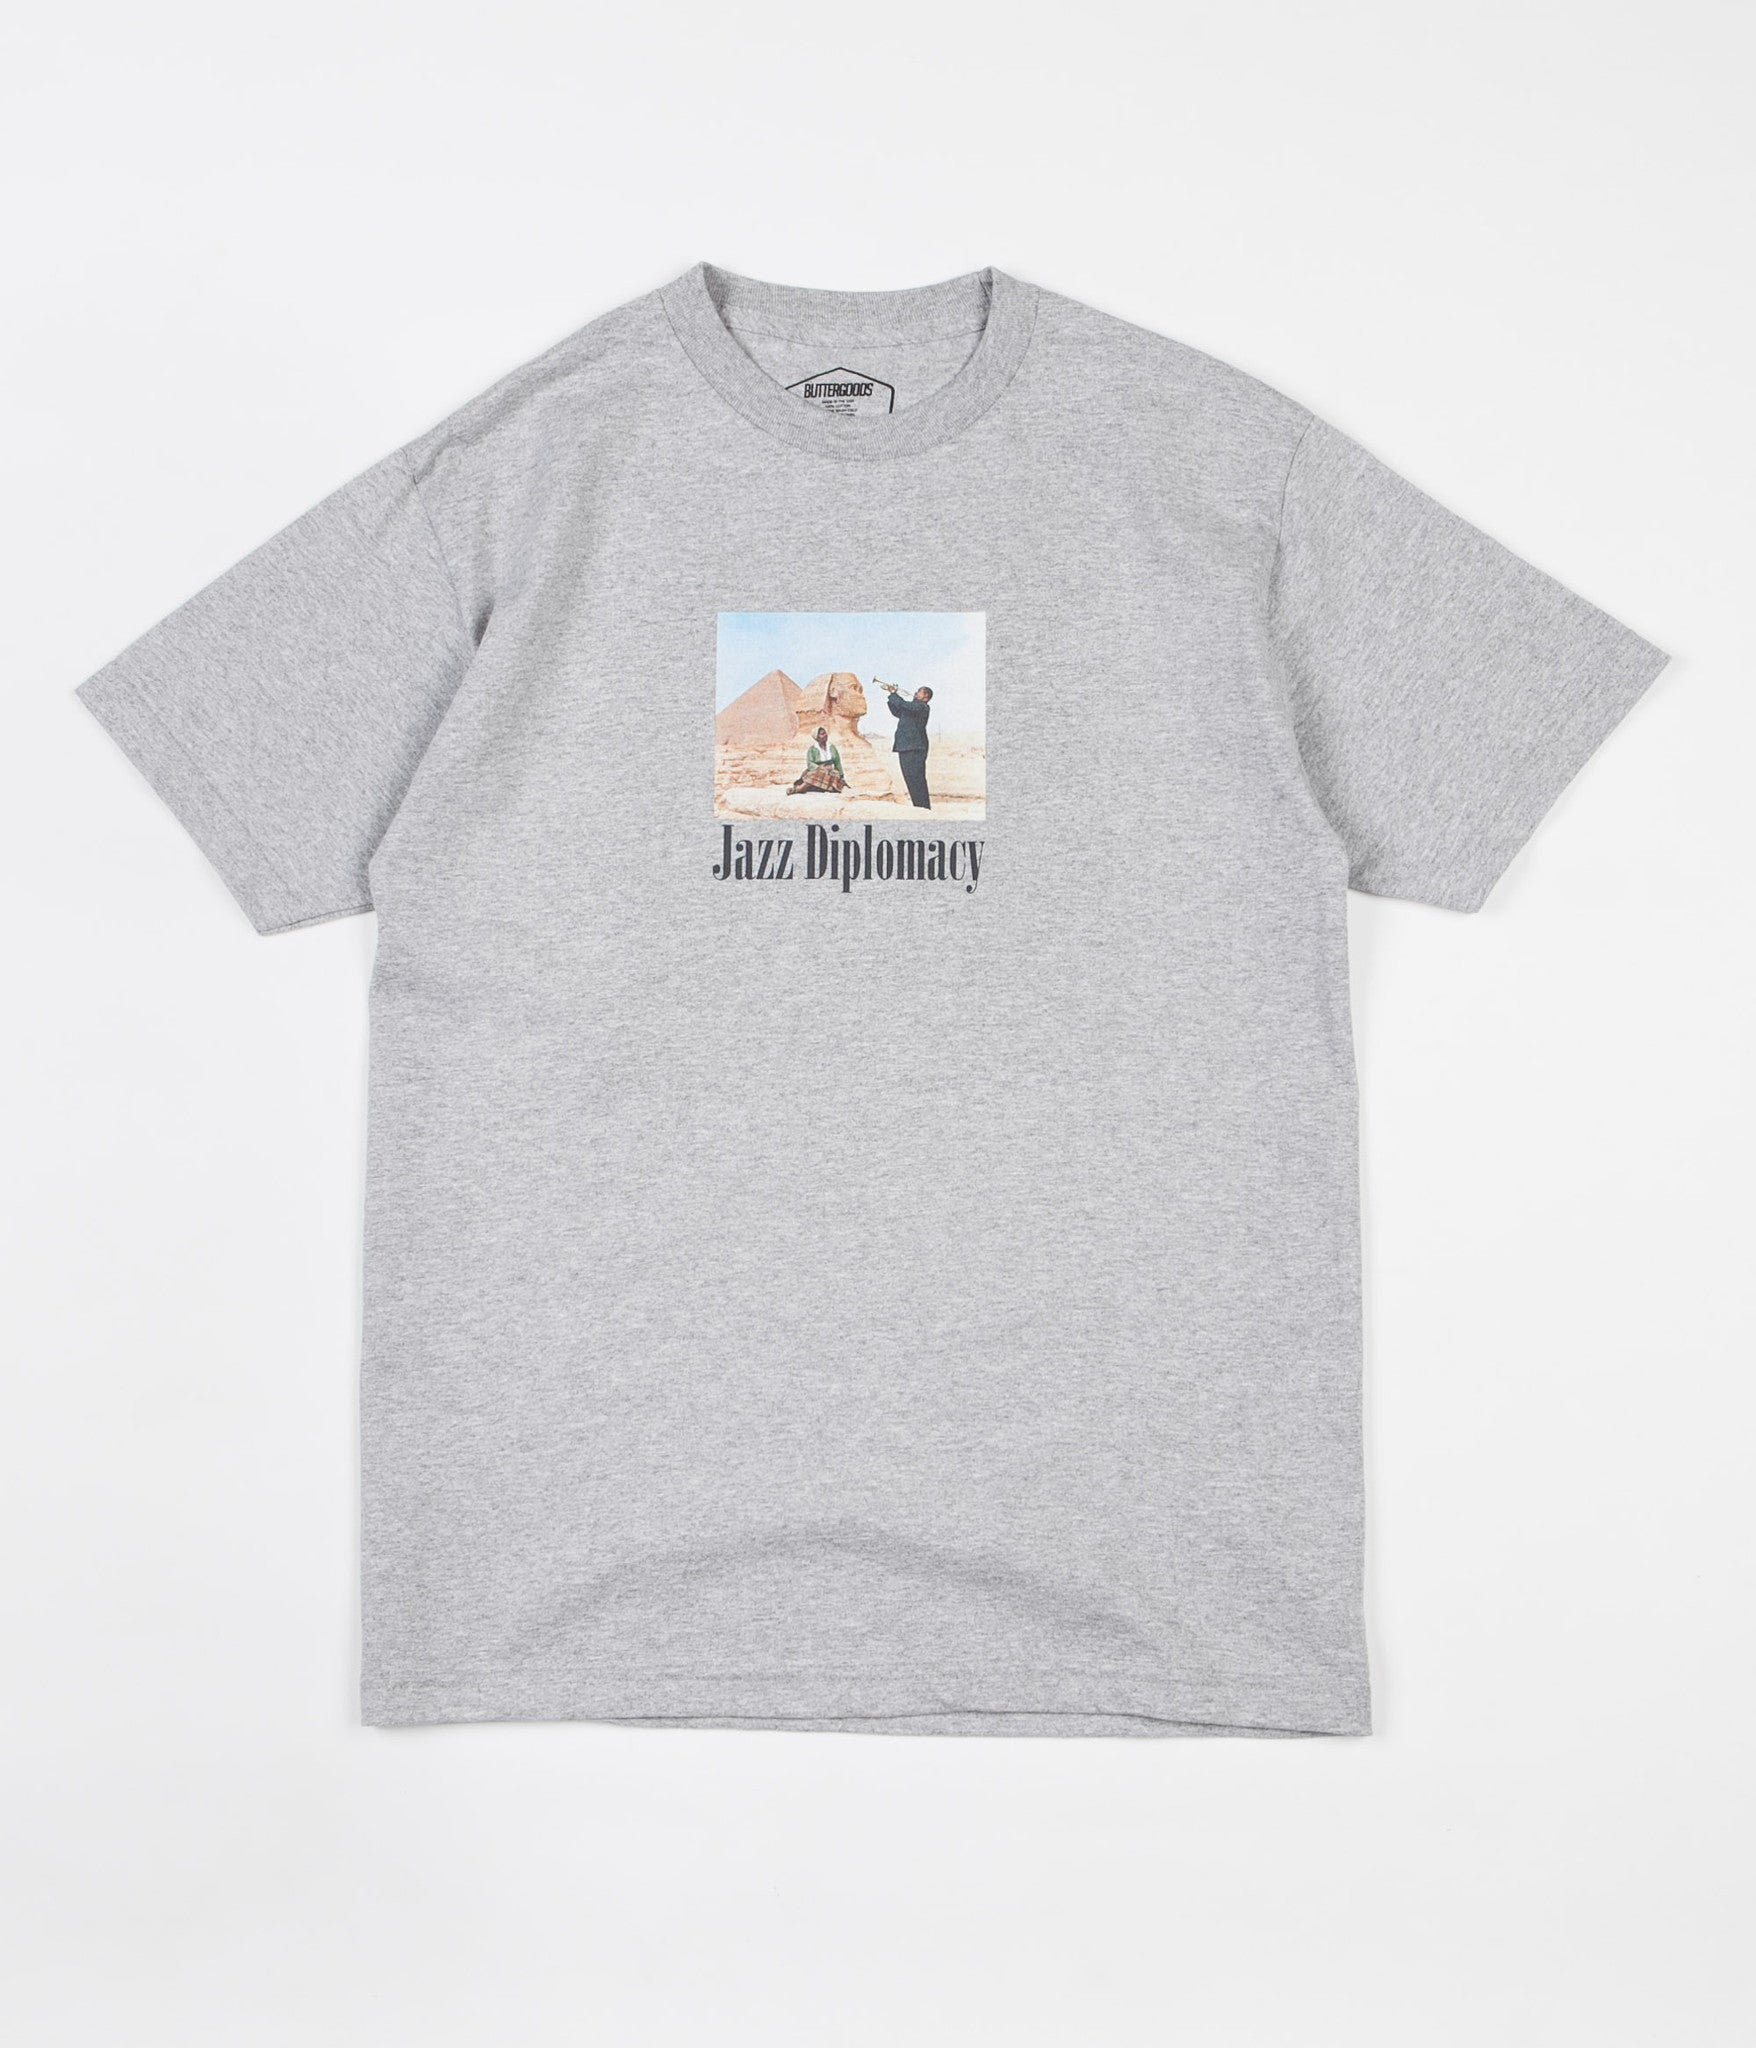 Butter Goods Jazz Diplomacy T-Shirt - Heather Grey